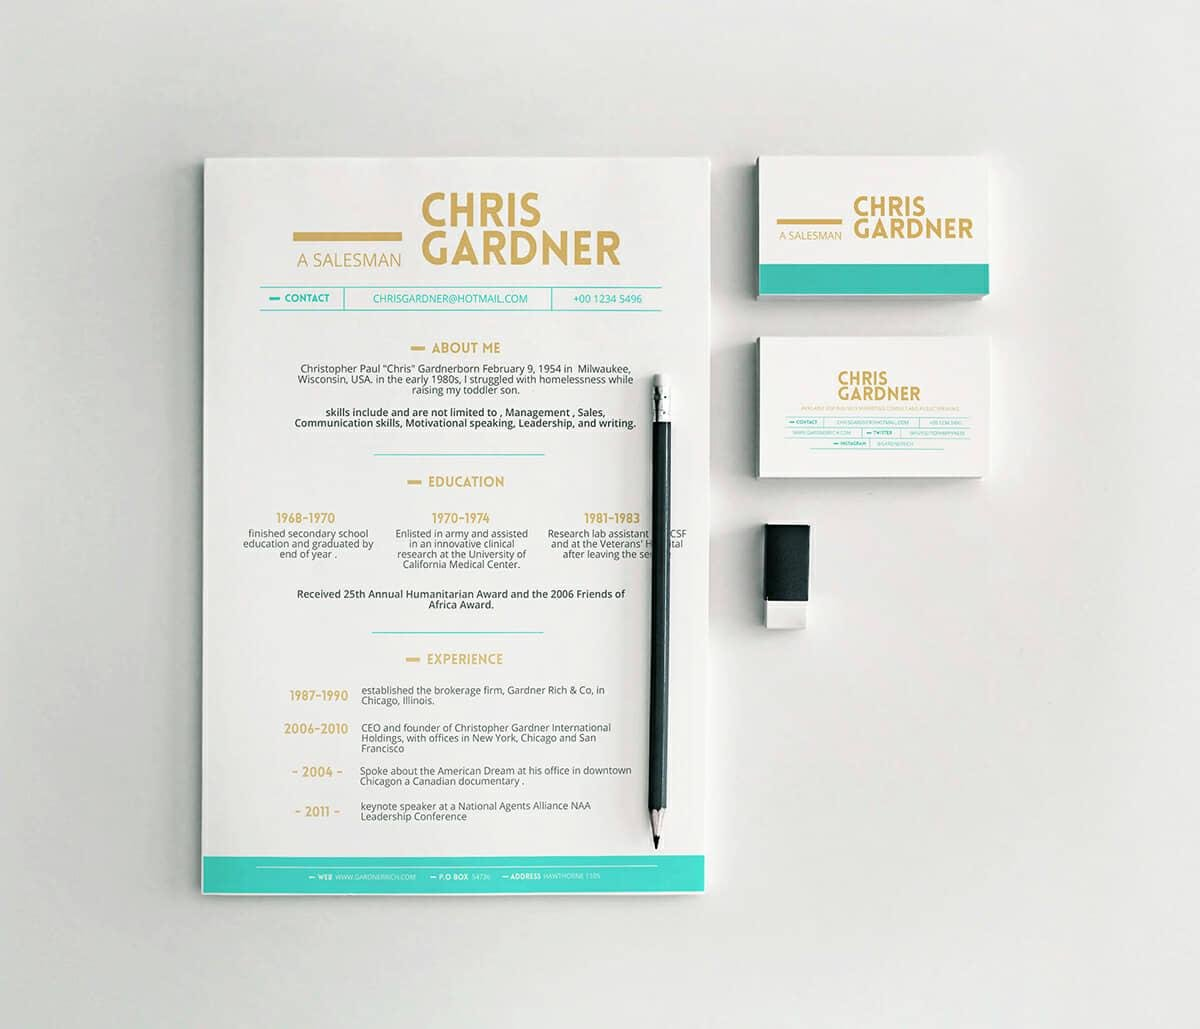 15 resume design ideas inspirations templateshow to tutorial well designed resume with golden and mint details altavistaventures